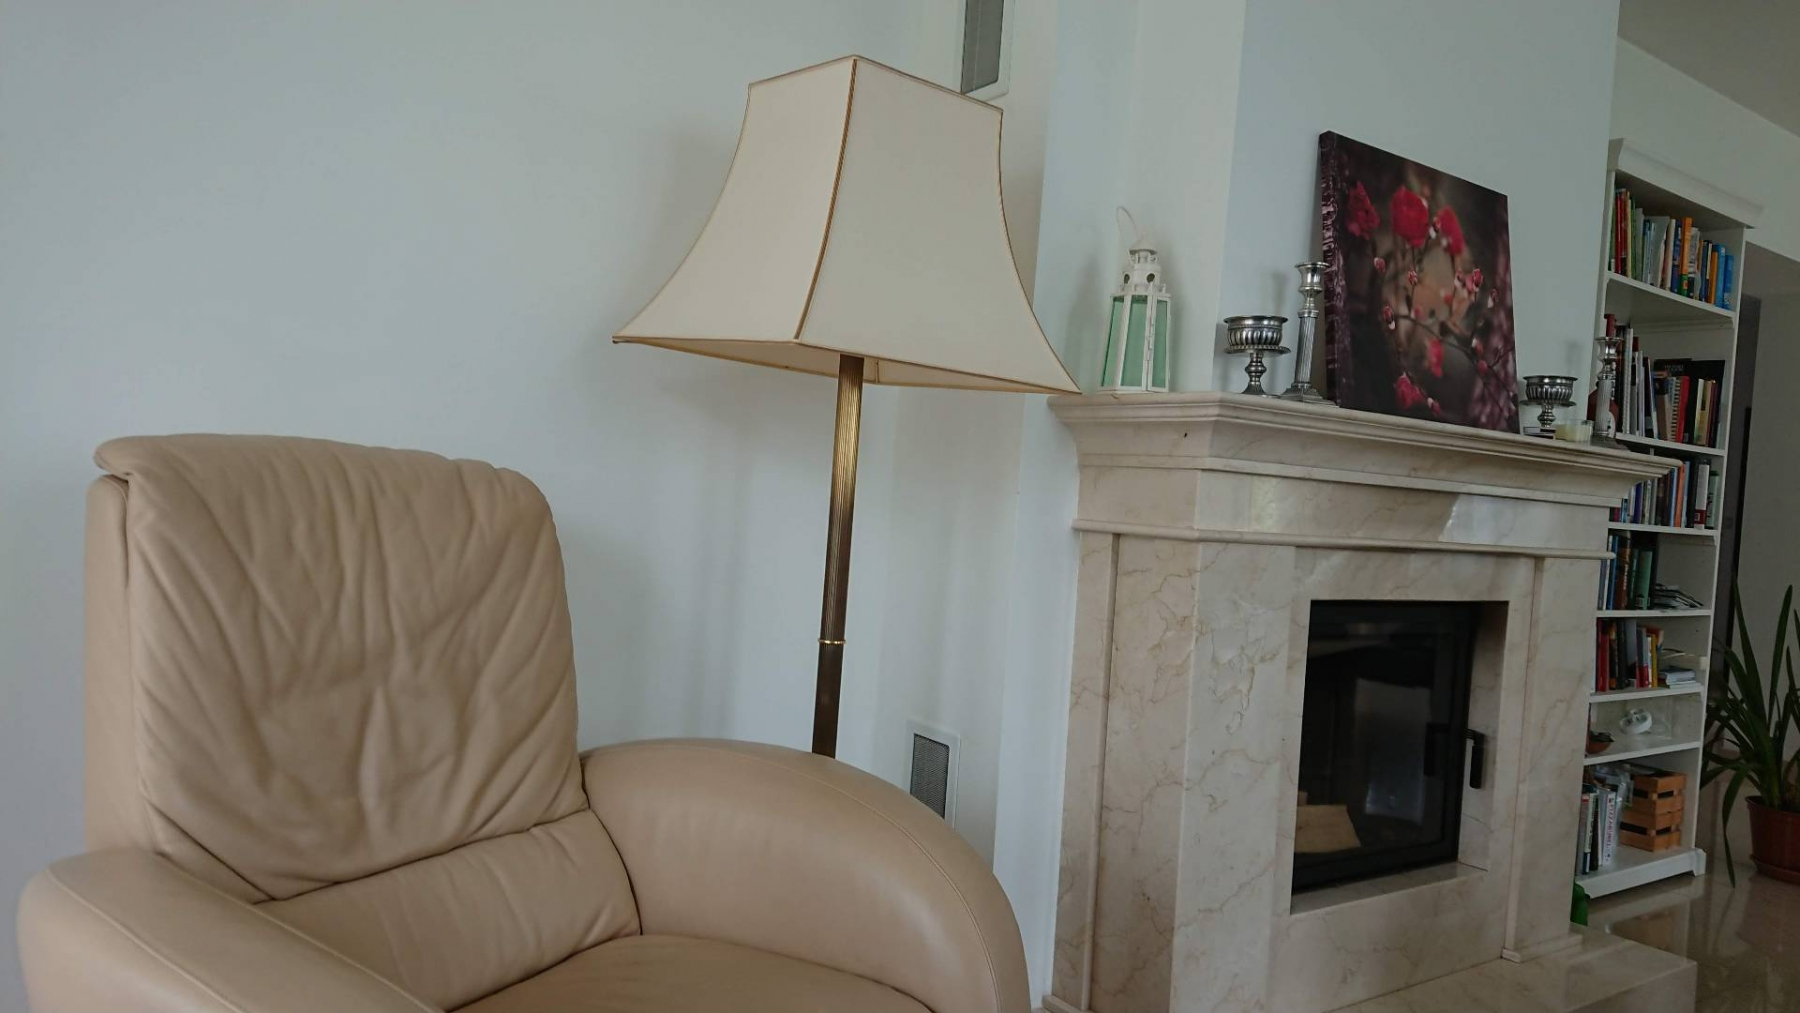 Fireplace in the living room with armchair